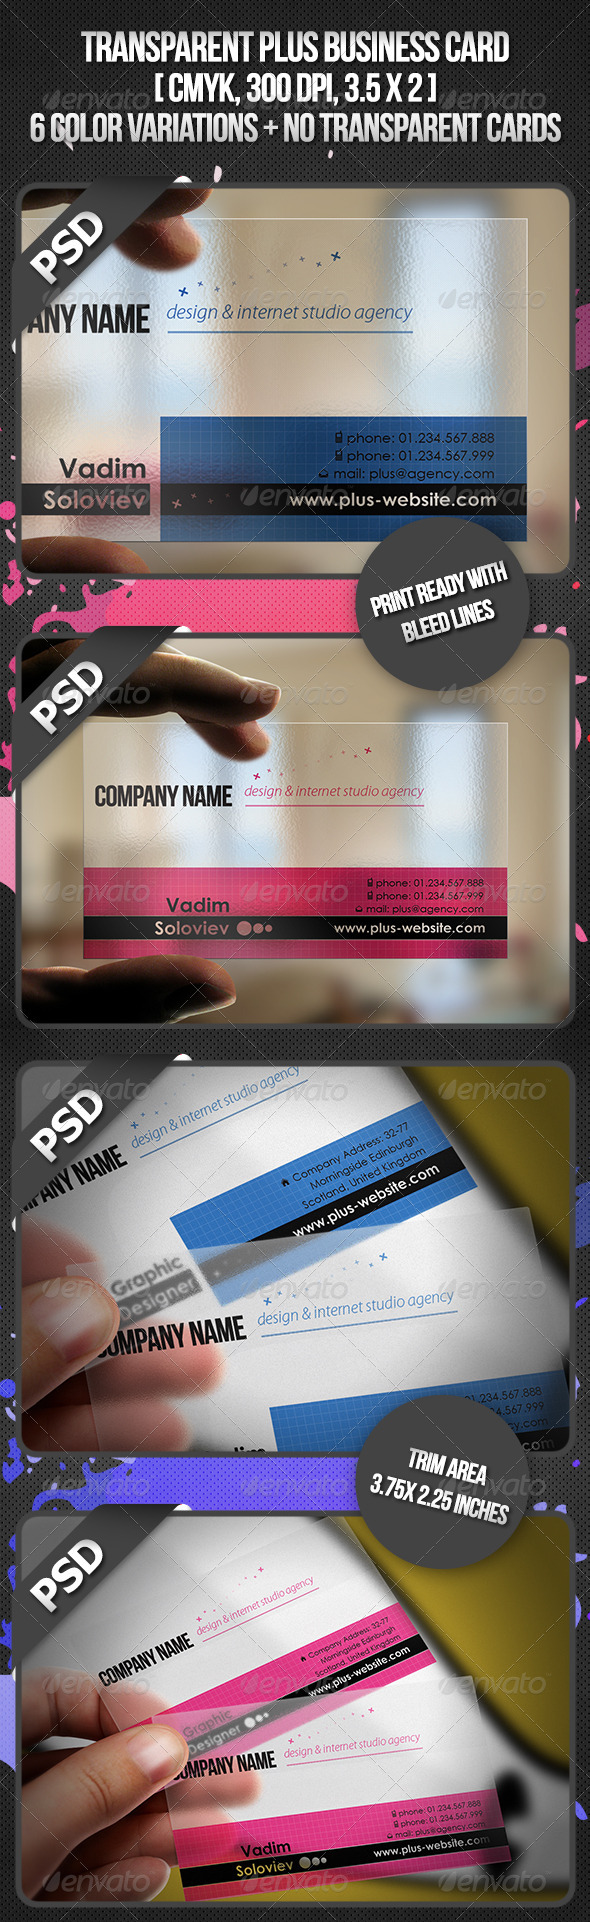 Transparent Plus Business Card - Creative Business Cards